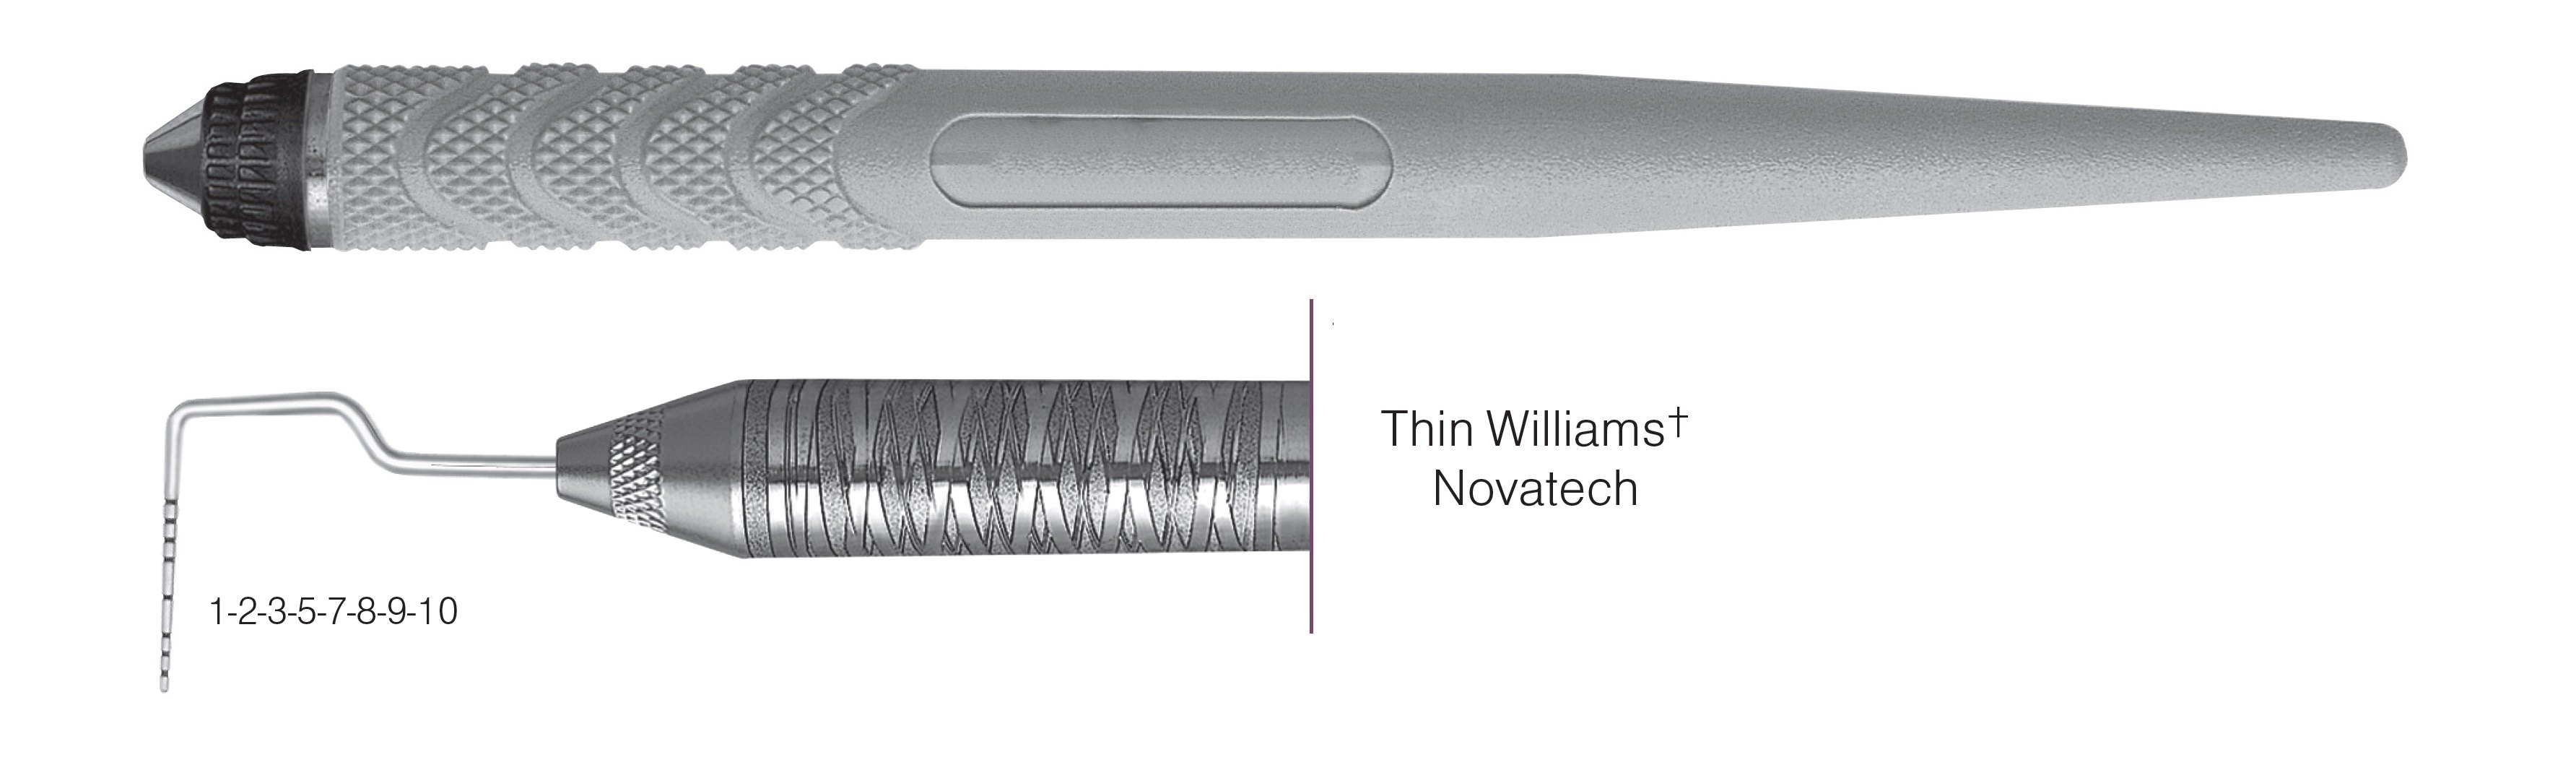 HF-PCPNTOW6-8, Thin Williams+ Novatech Probe, Black markings, 1-2-3-5-7-8-9-10 mm, Handle Resin Eight, Single End